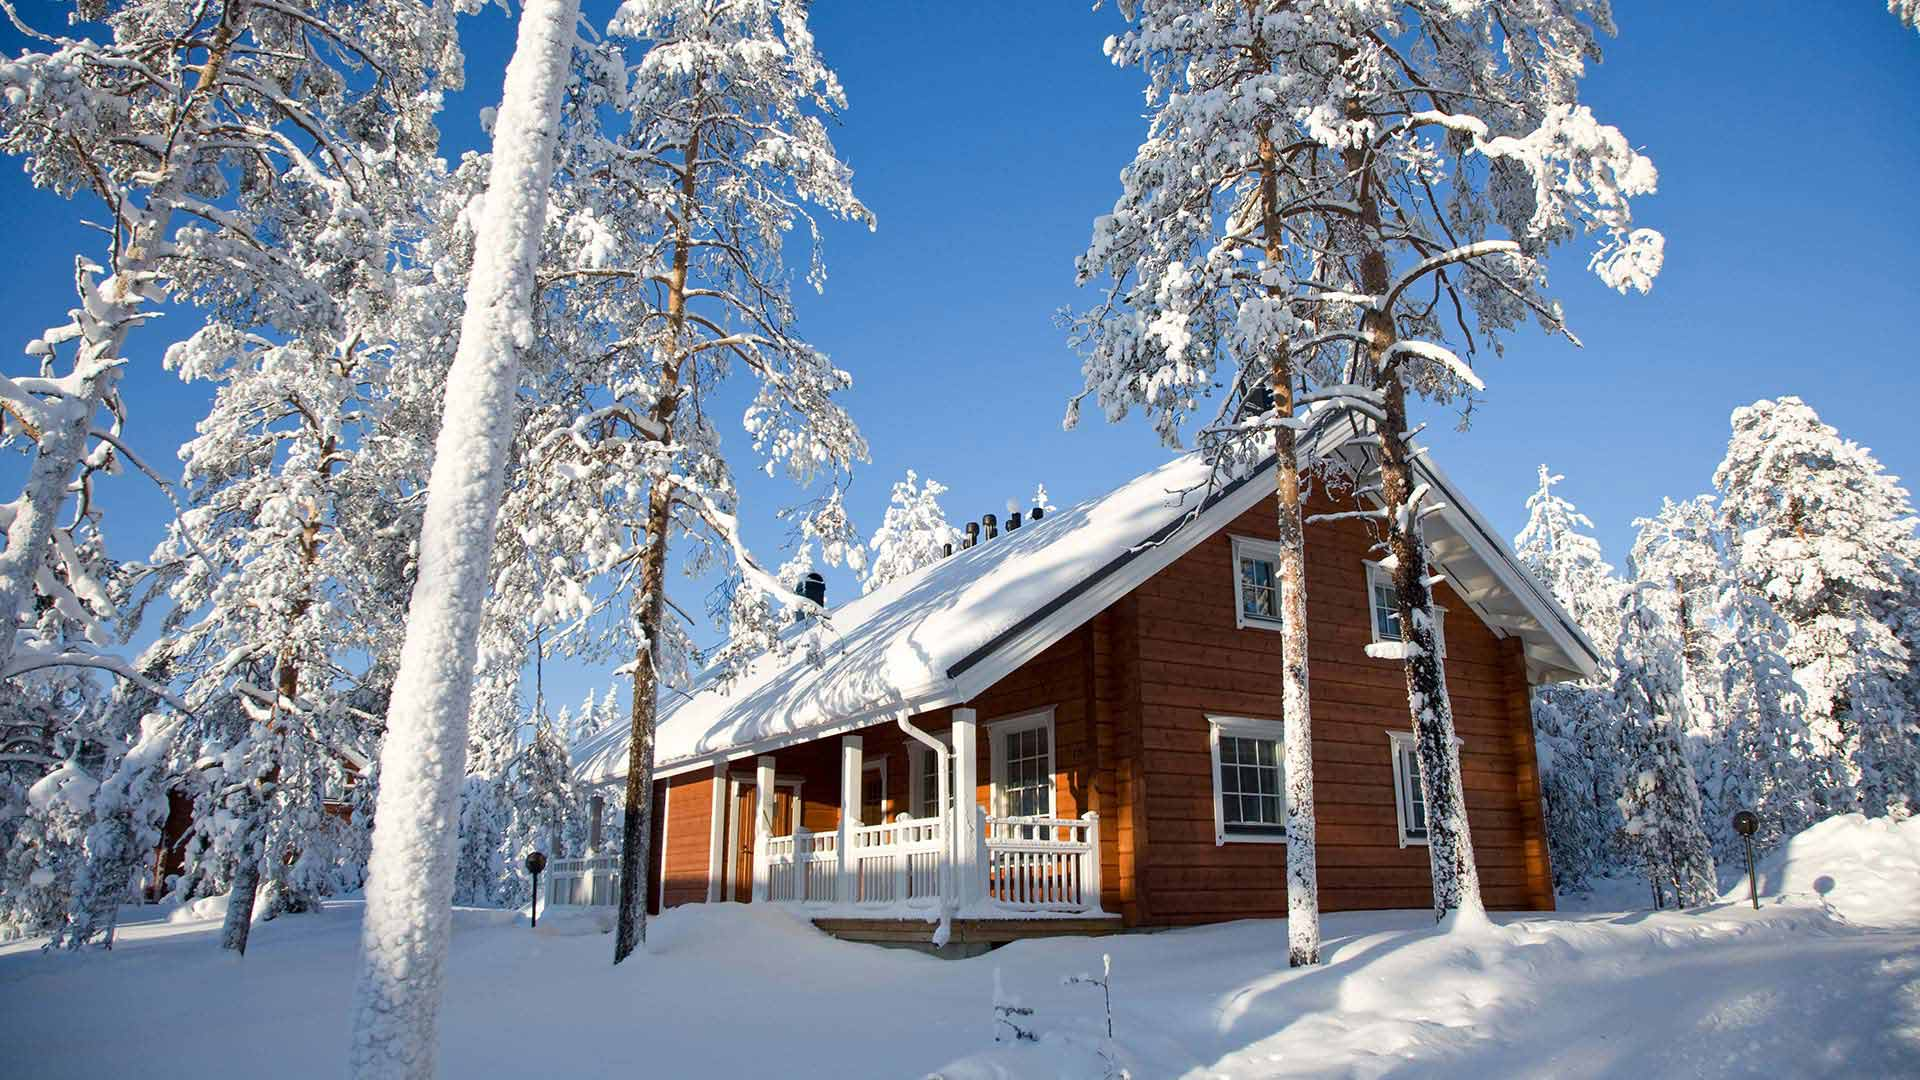 Lapland Cabin Holidays Cottage Holidays In Lapland Log